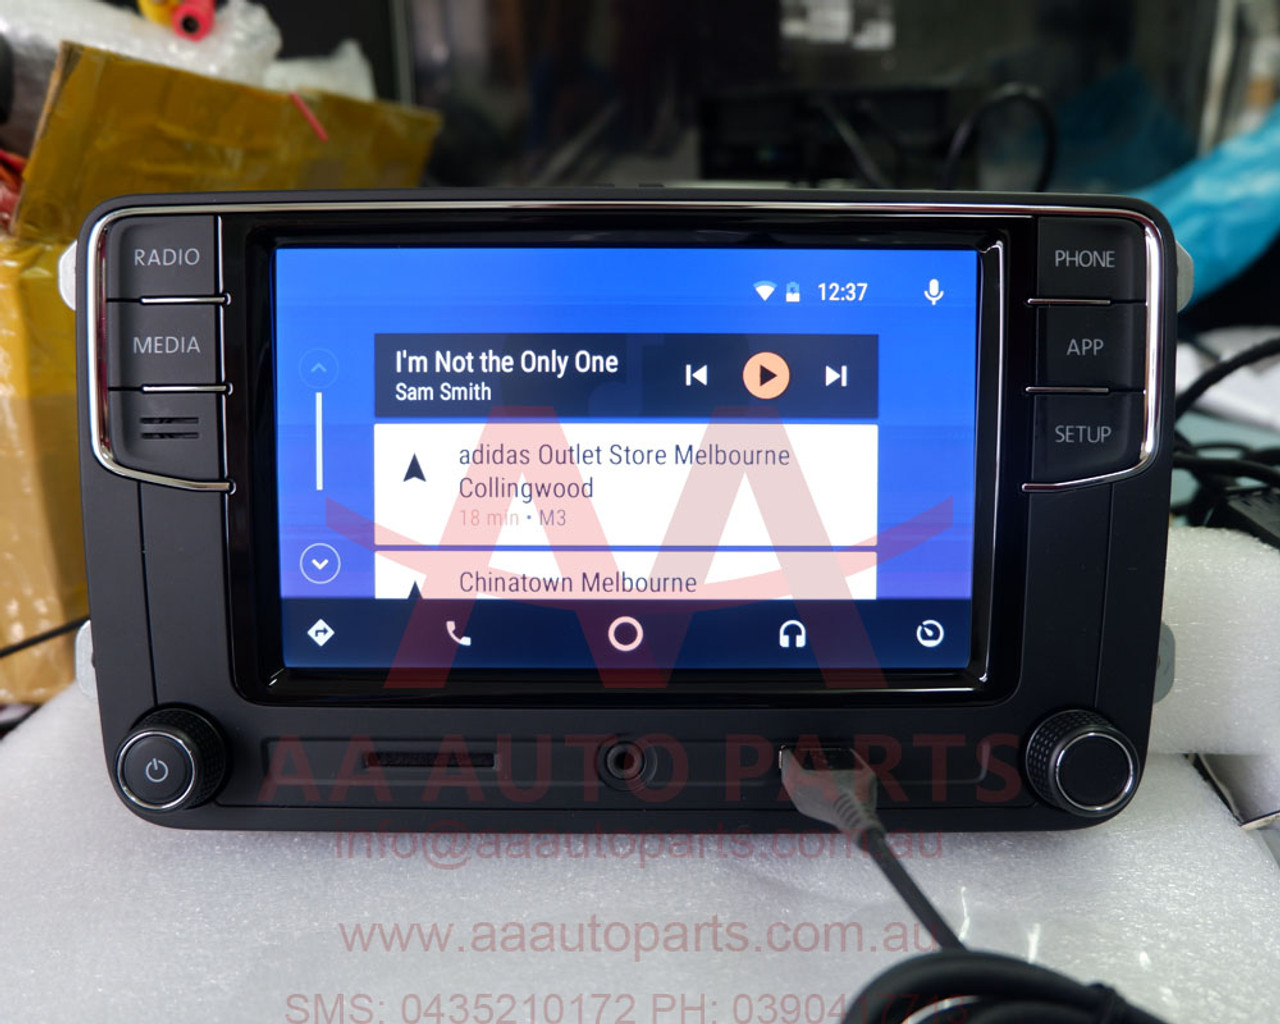 Volkswagen RCD340 Android Auto Carplay Radio